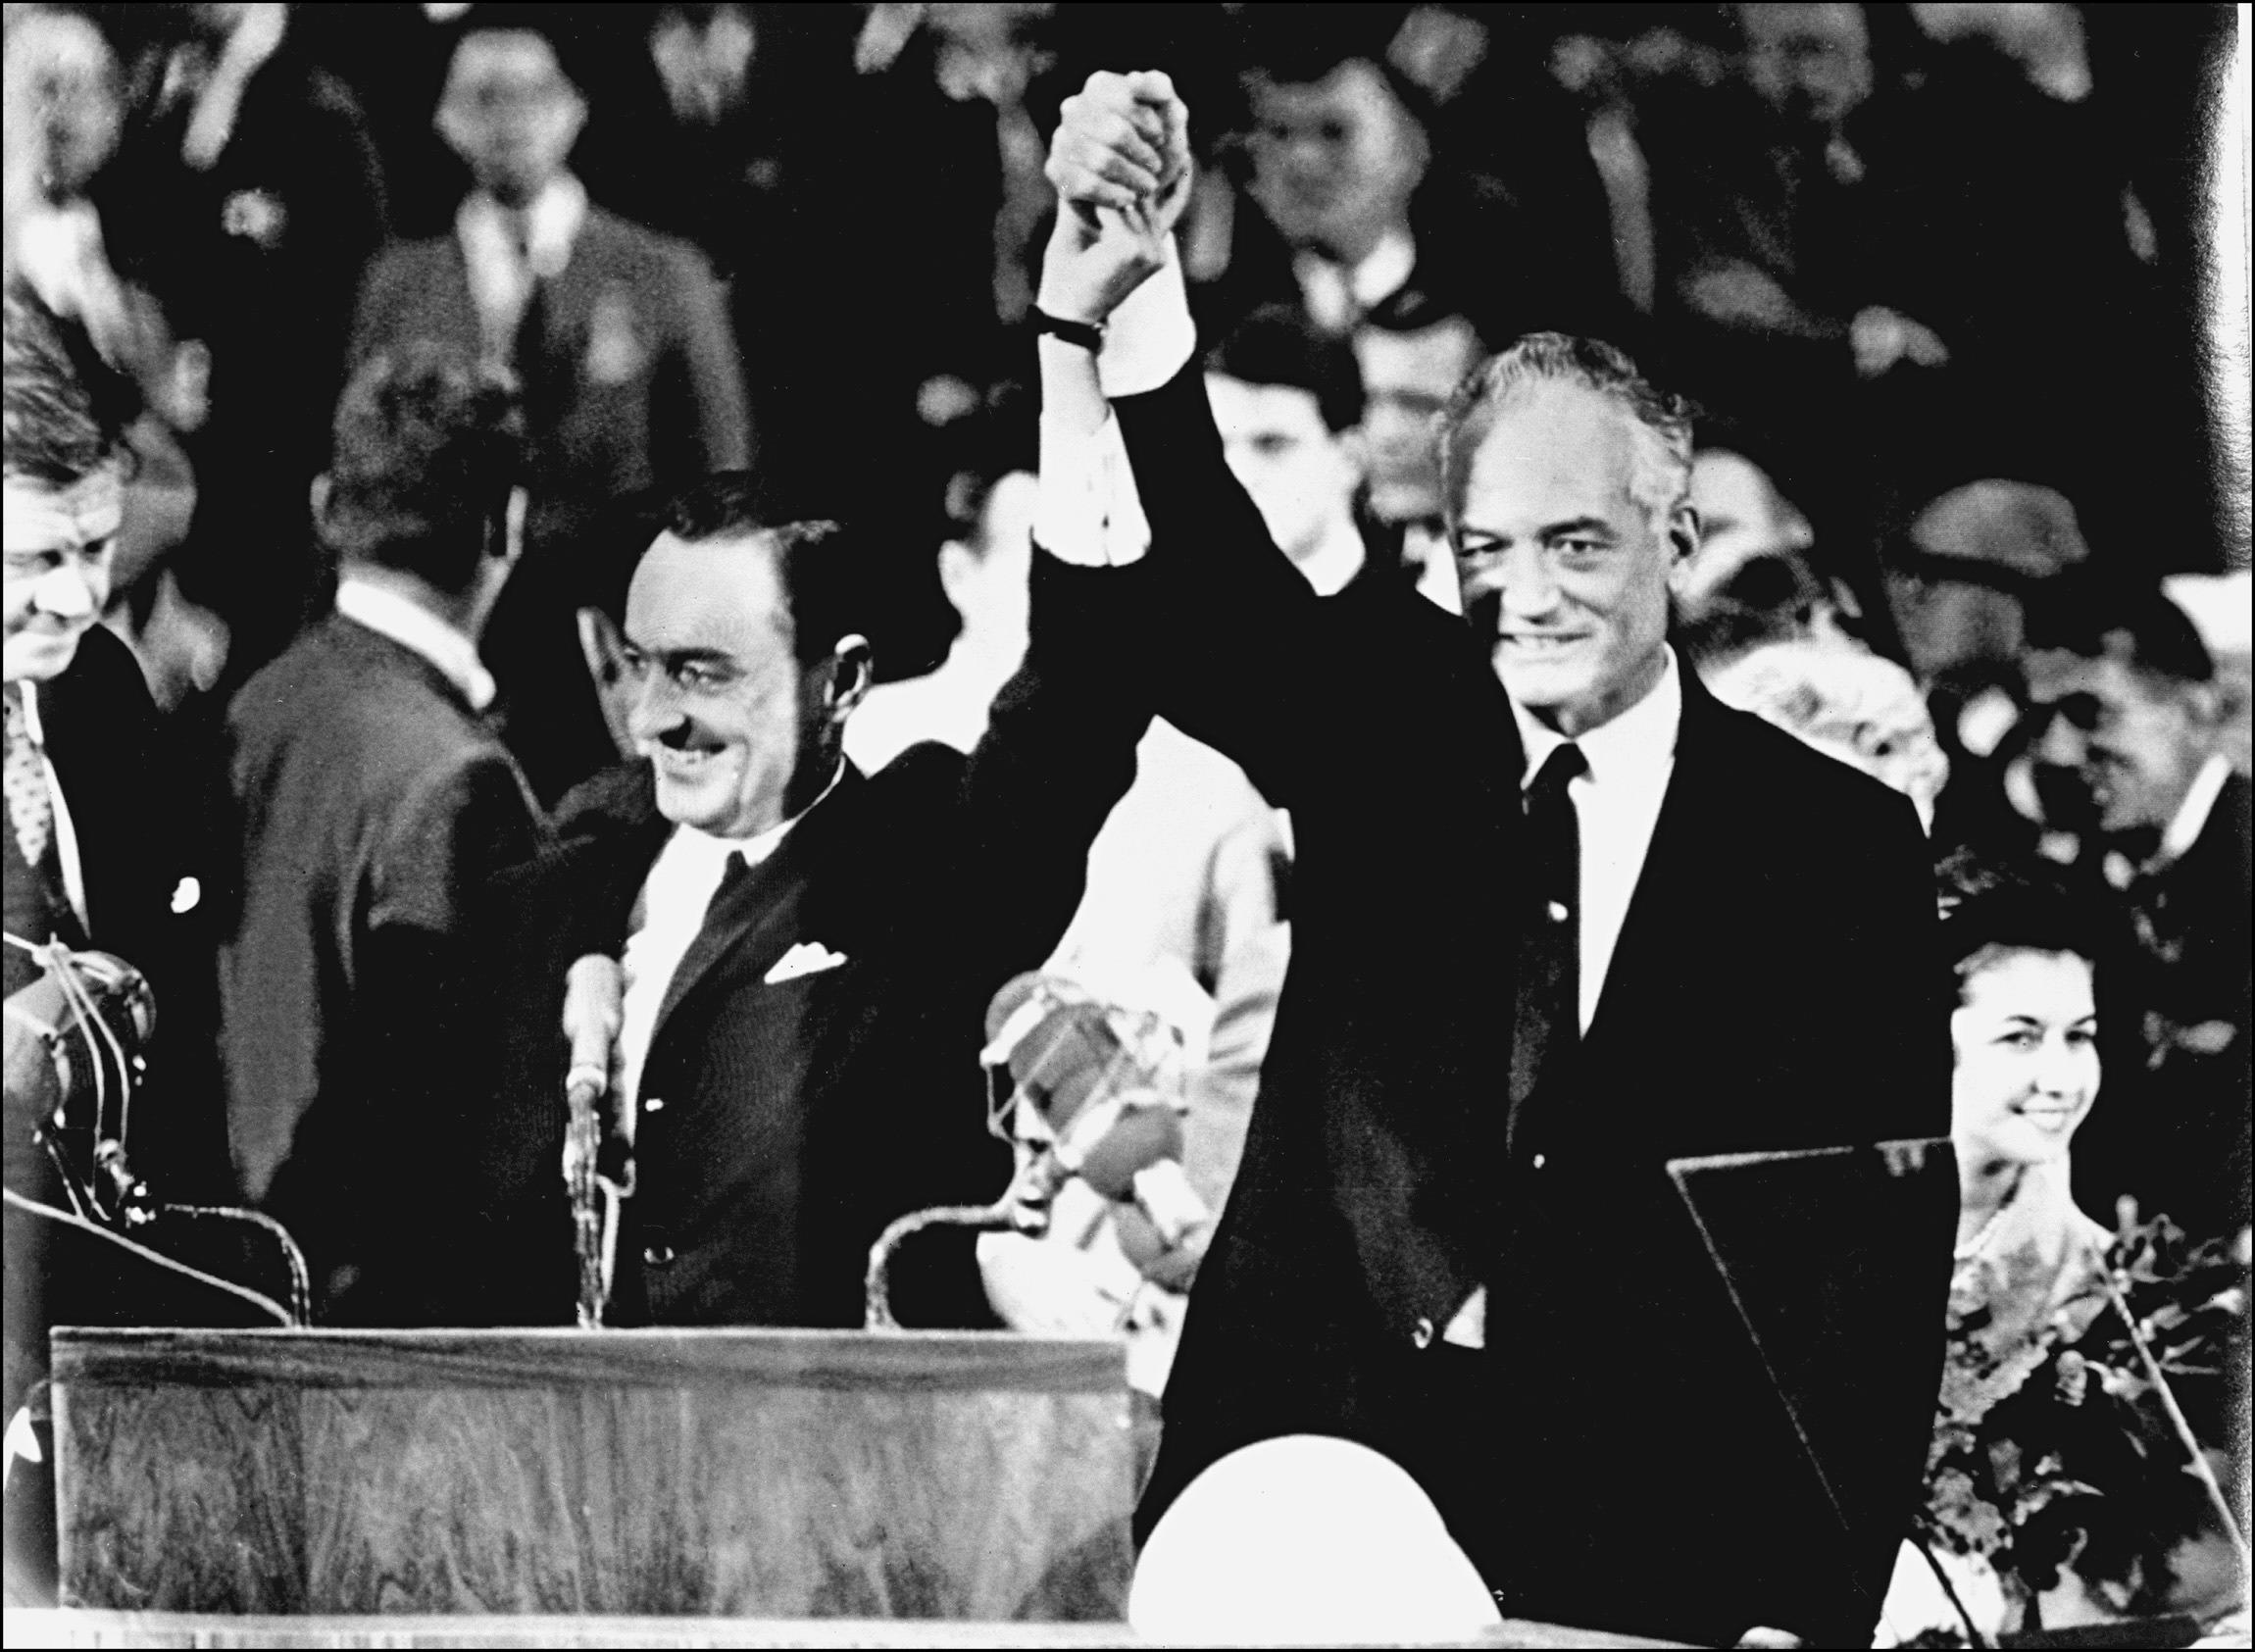 Barry Goldwater (R) and his running mate William Miller accepting the Republican Party nomination